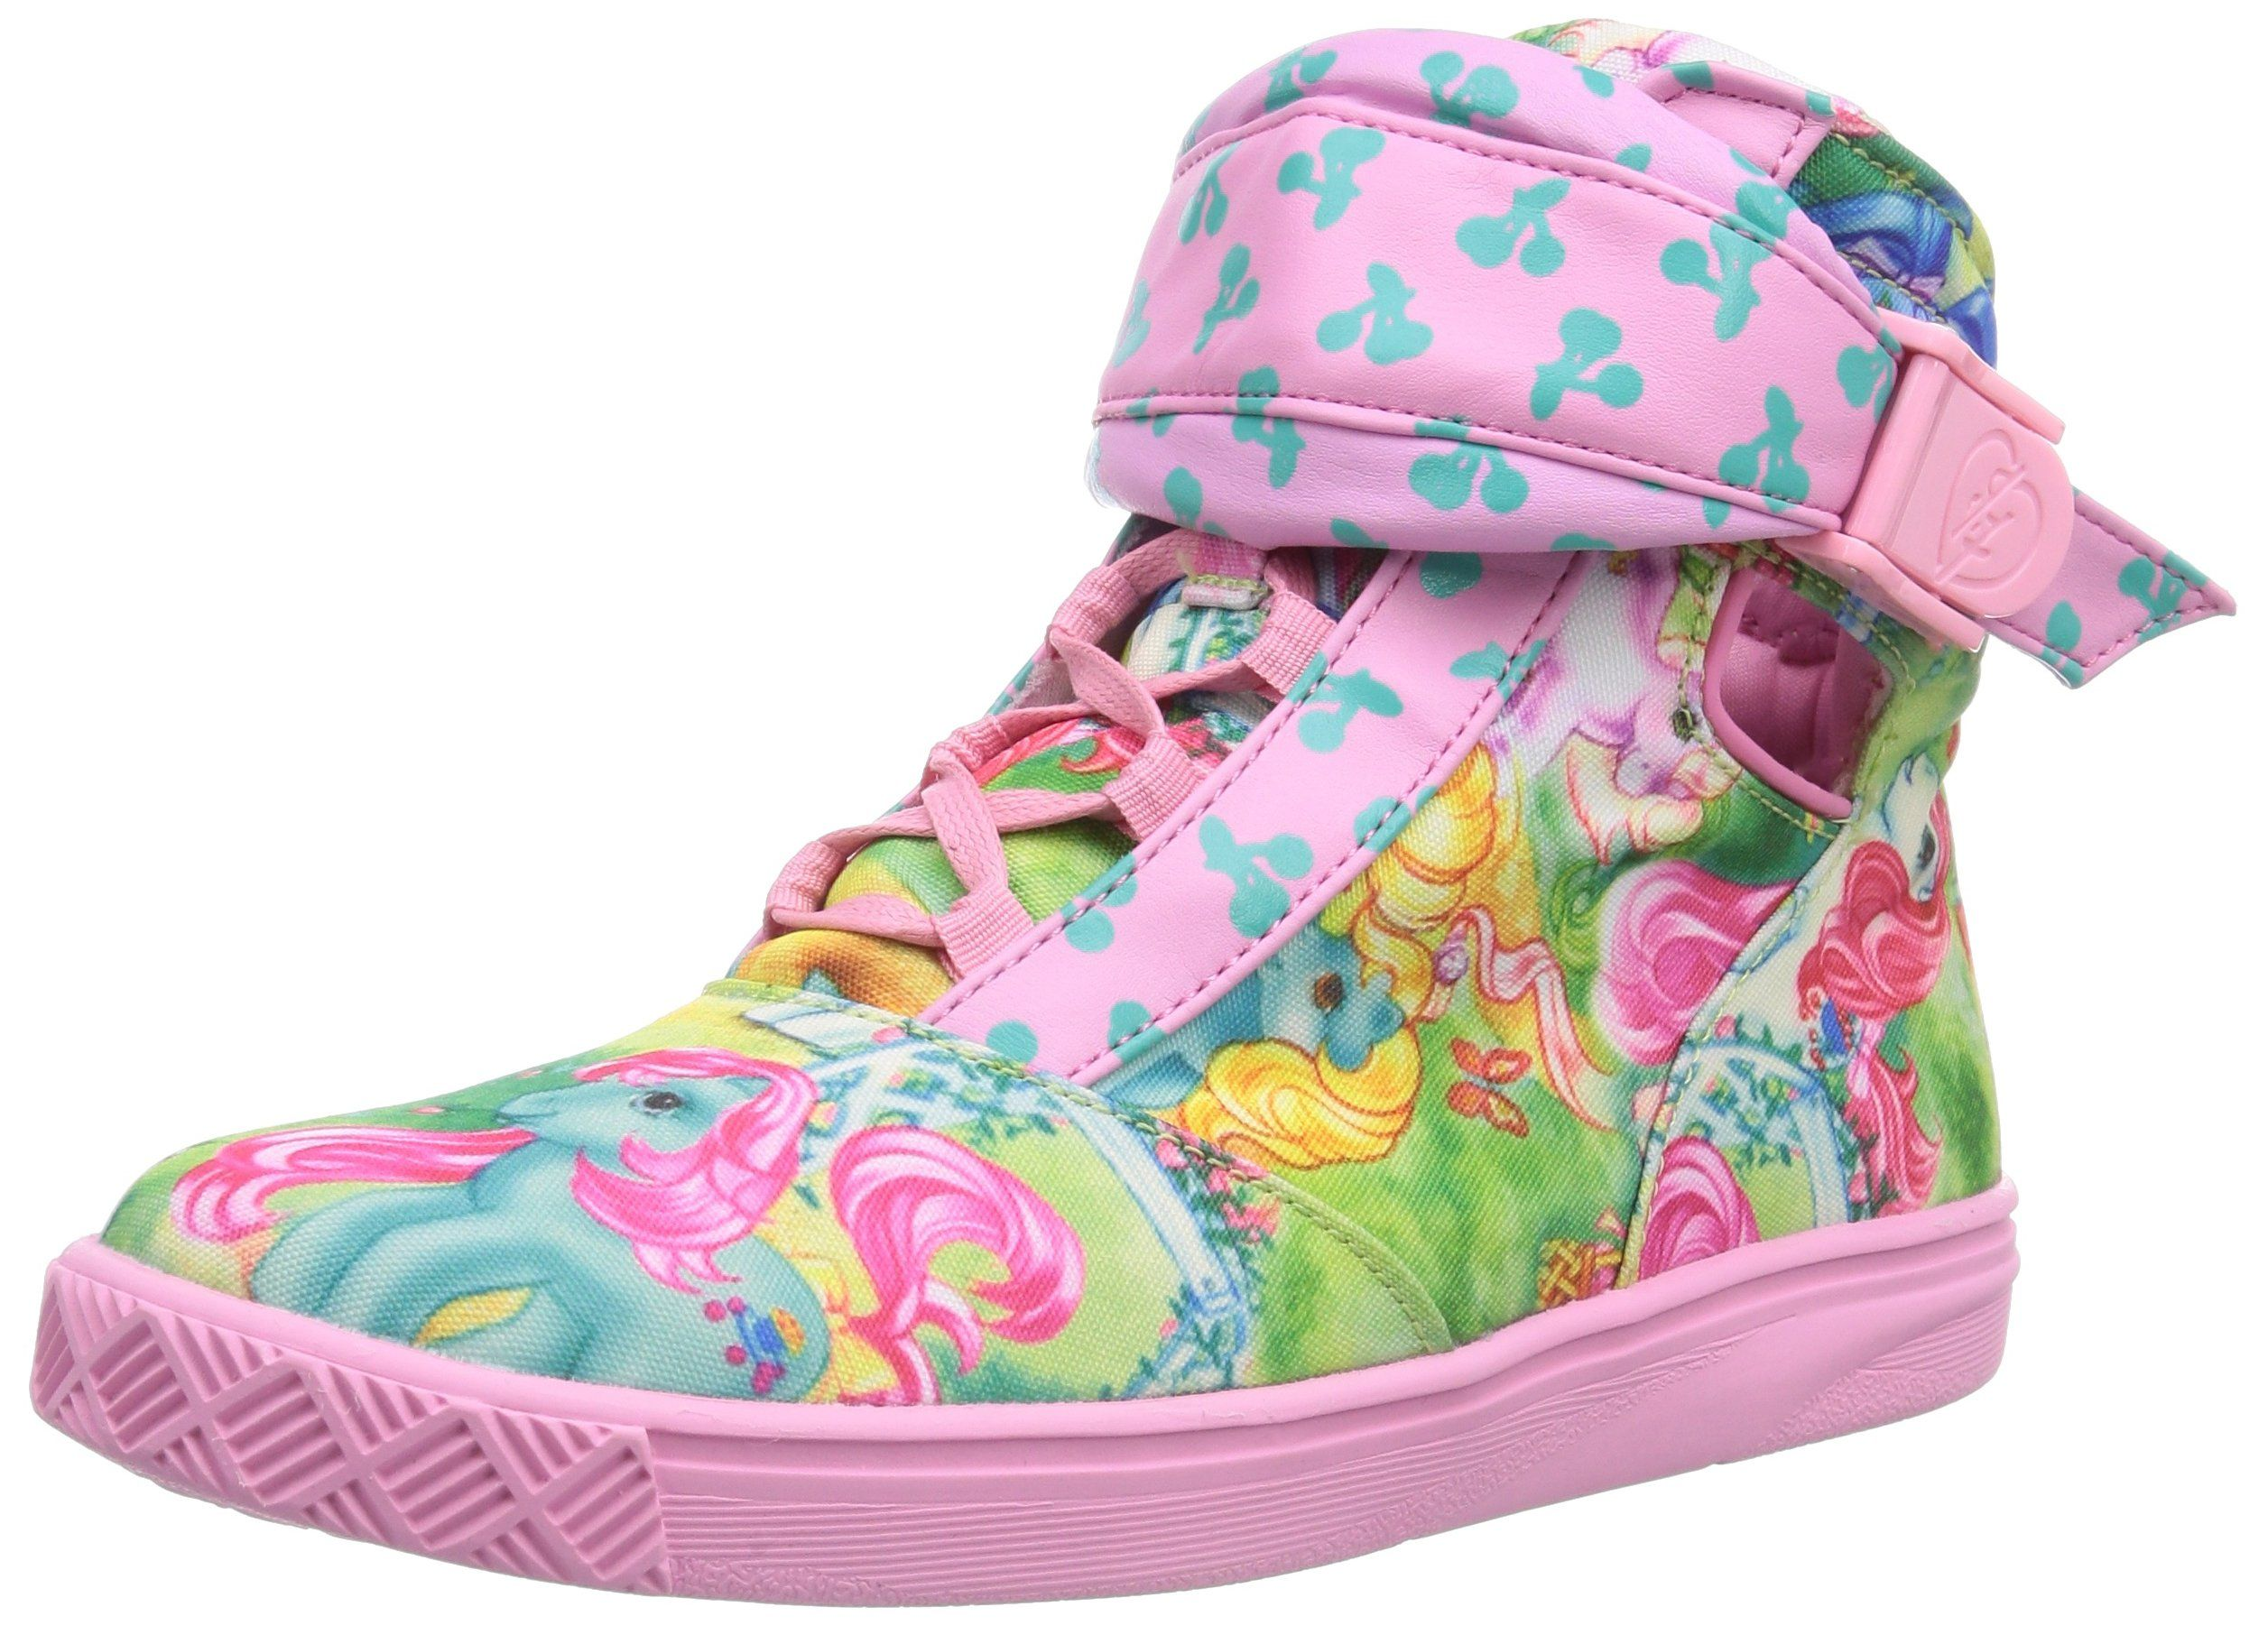 Pony sneakers, My little pony shoes